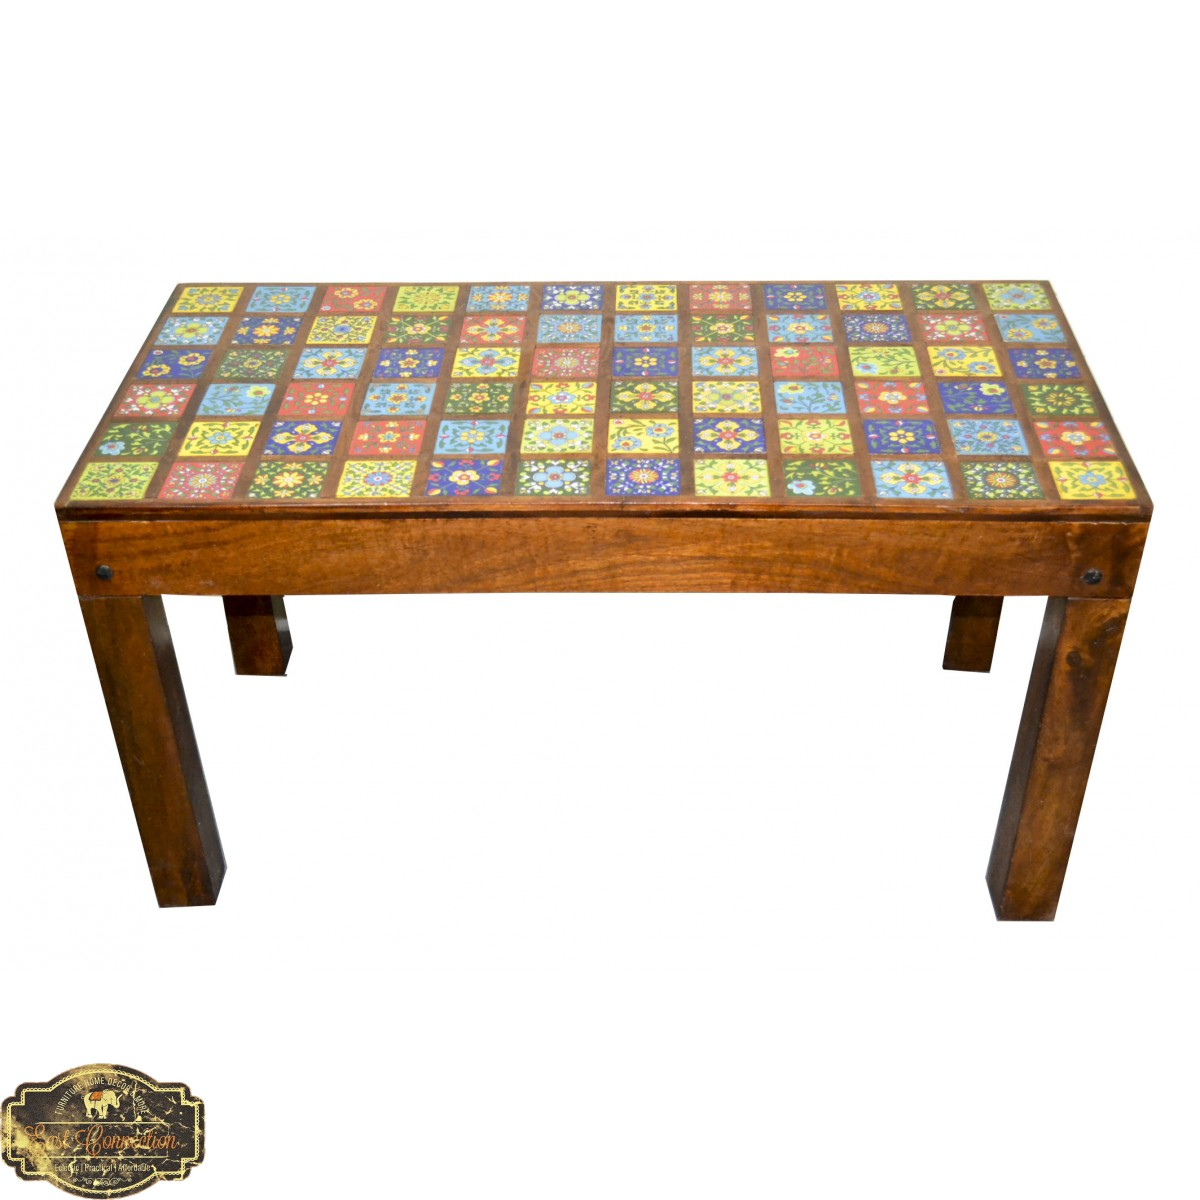 - Moroccan Tile Coffee Table